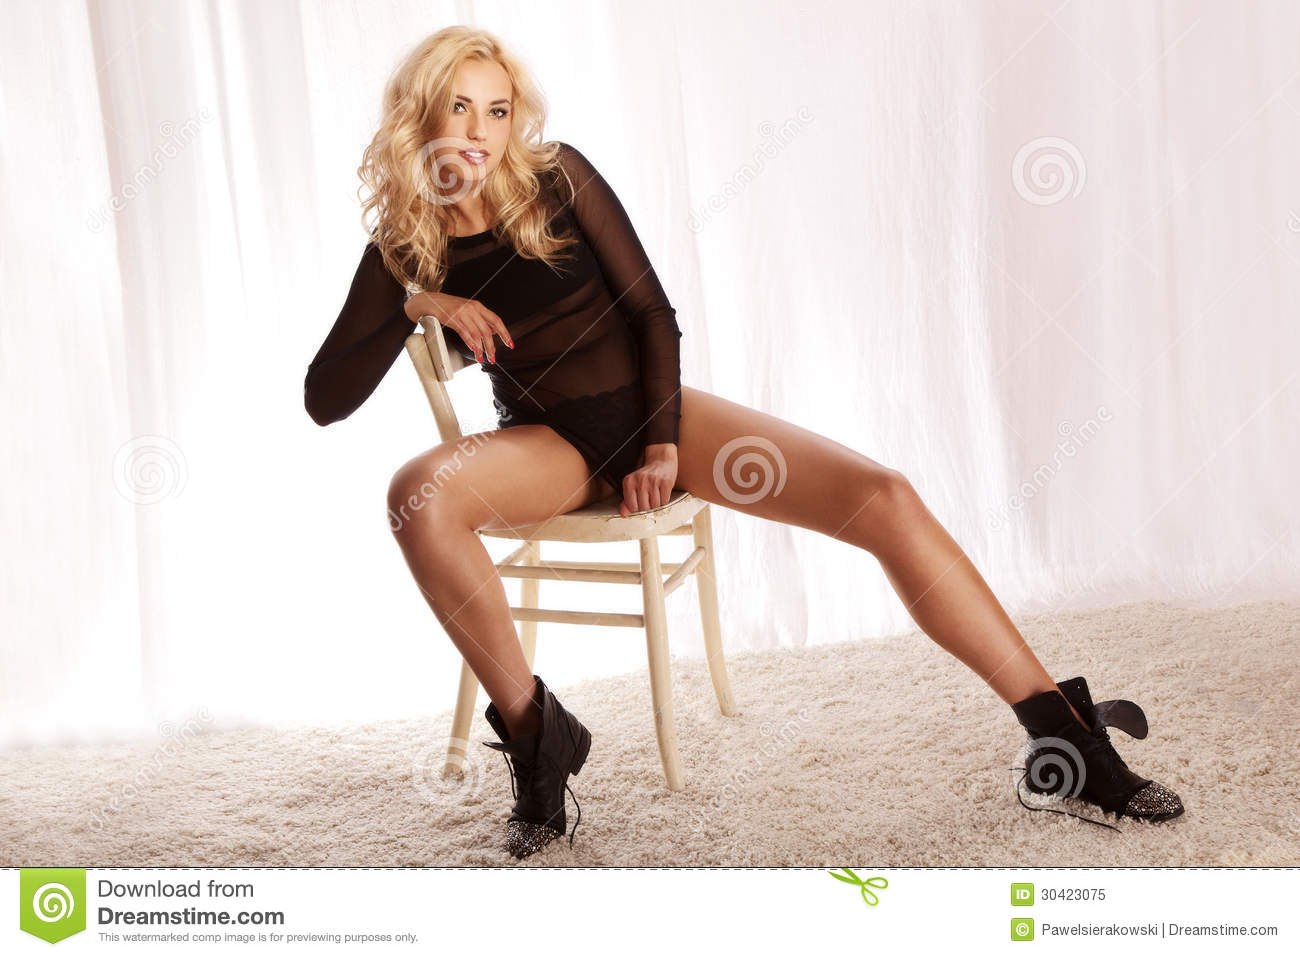 Remarkable, very hot girl sitting in chair